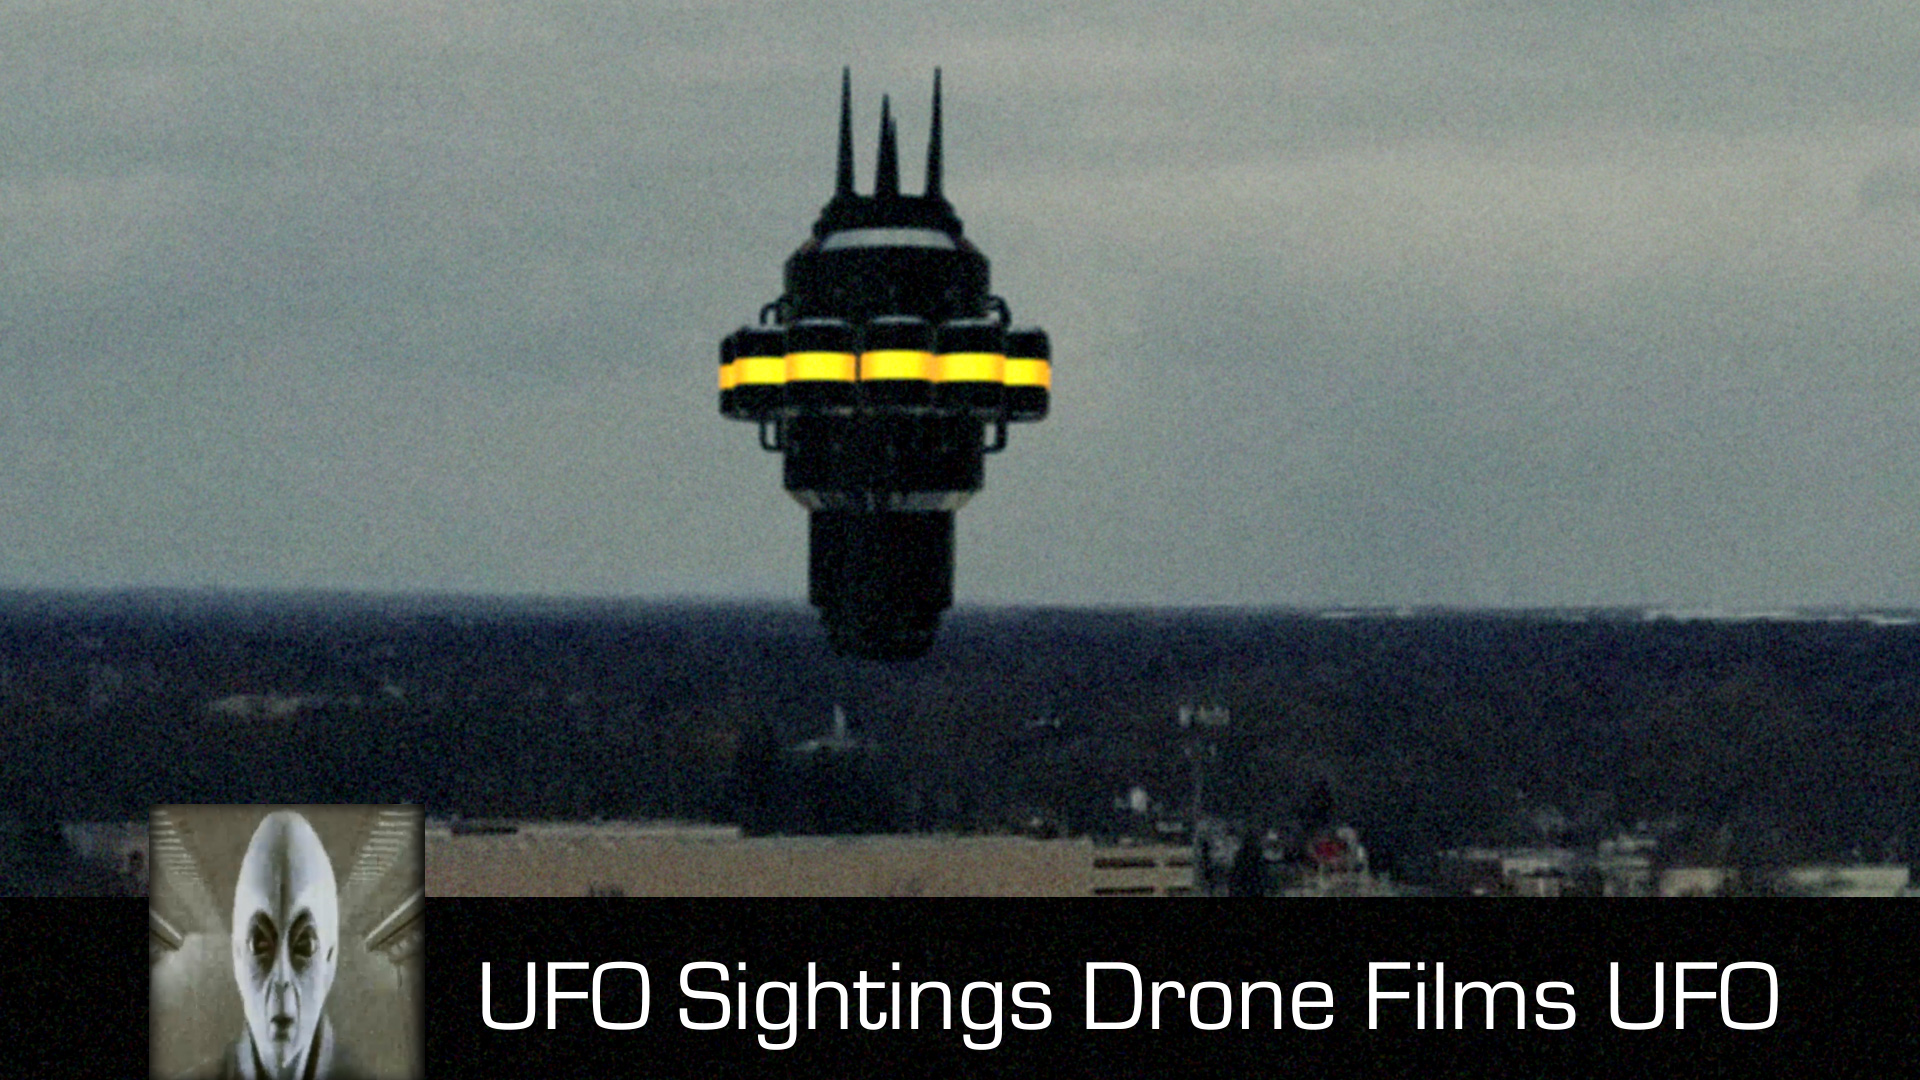 UFO Sightings Drone Films UFO August 30th 2017